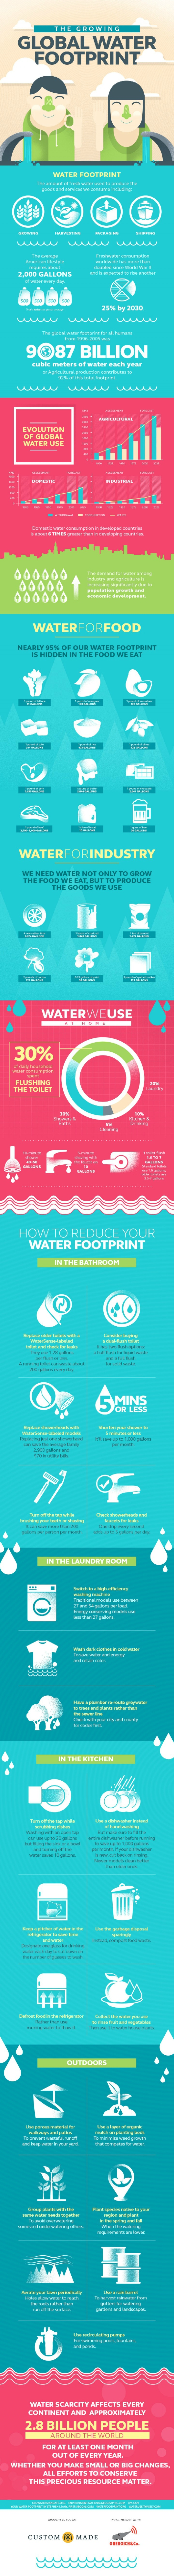 water saving tips for daily conservation